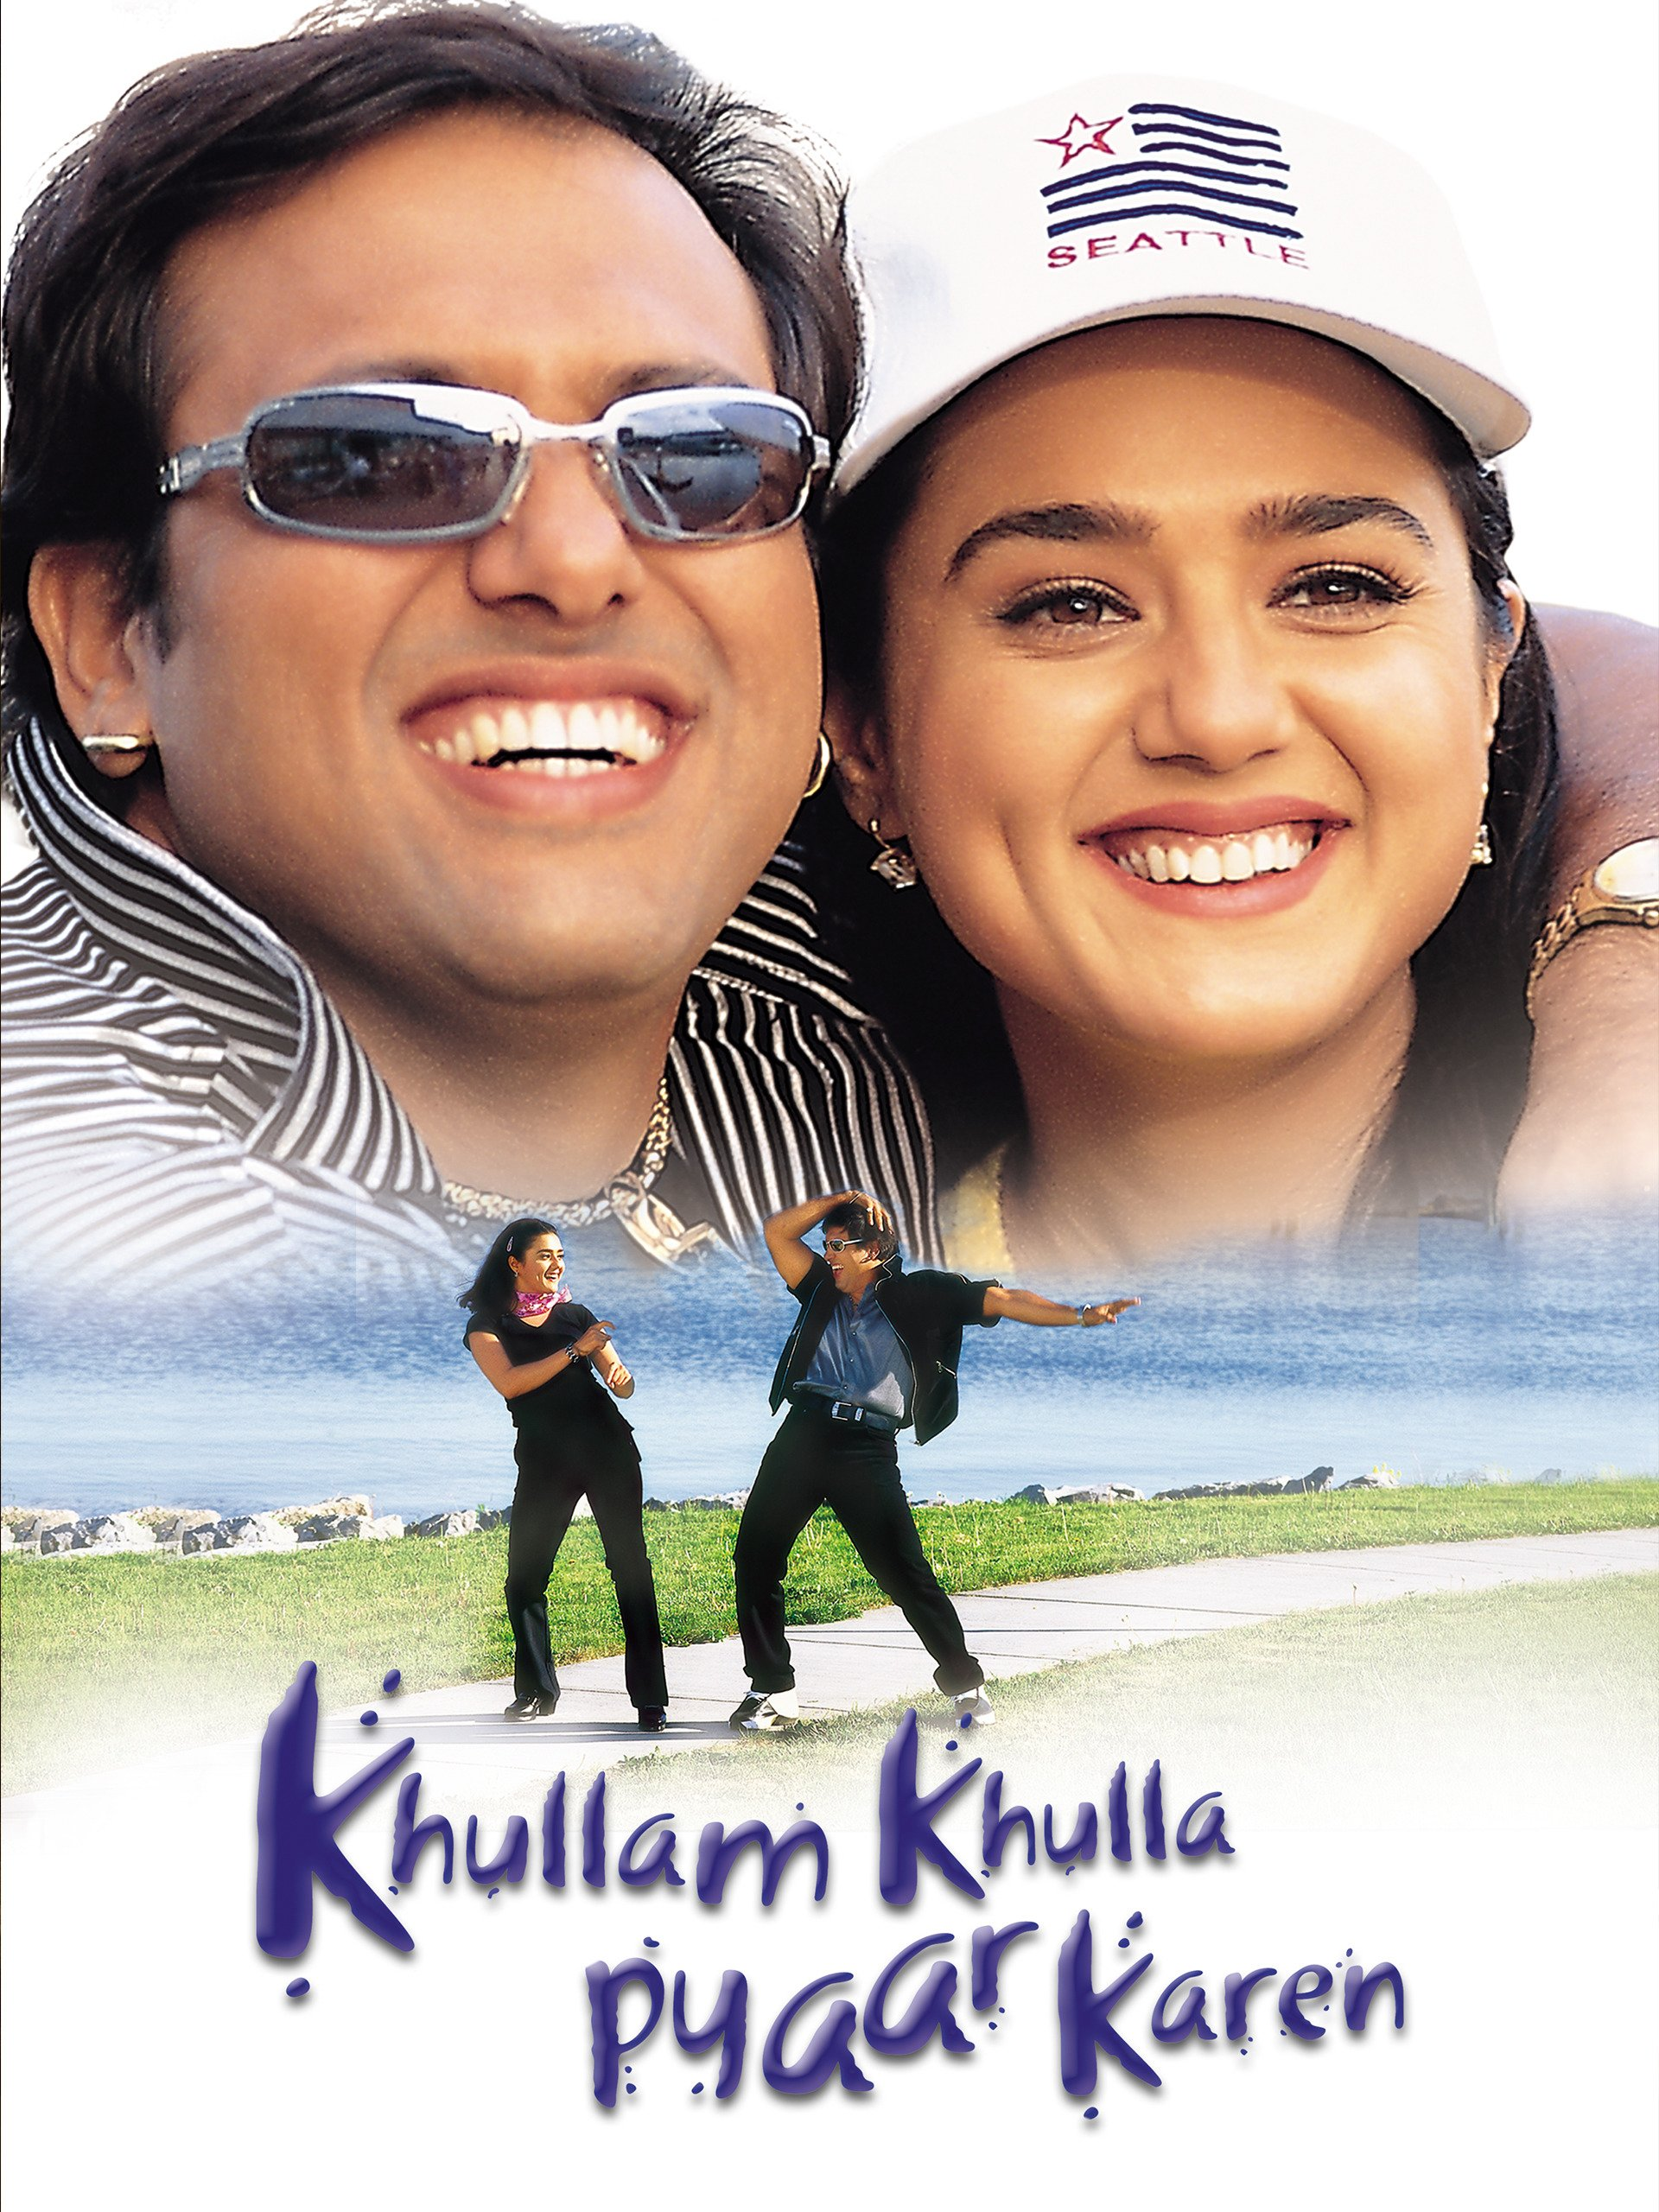 Khullam Khulla Pyaar Kare Movie Review Release Date Songs Music Images Official Trailers Videos Photos News Bollywood Hungama